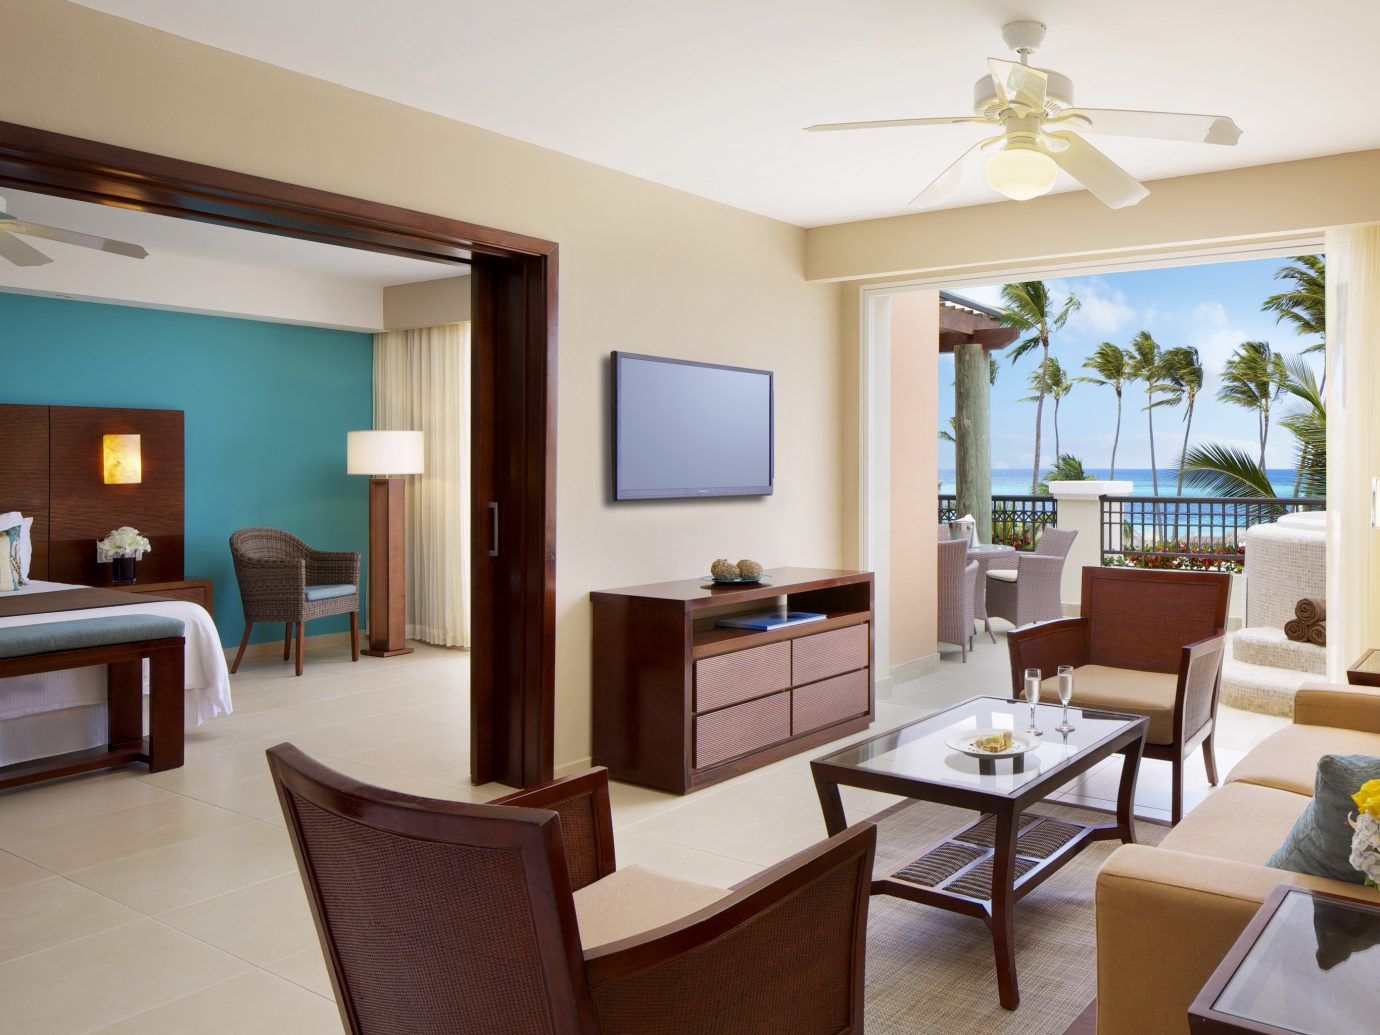 All-Inclusive Resorts Hotels Romance indoor floor wall table room chair property ceiling living room condominium window estate Suite real estate dining room home Villa interior design cottage apartment Dining furniture area